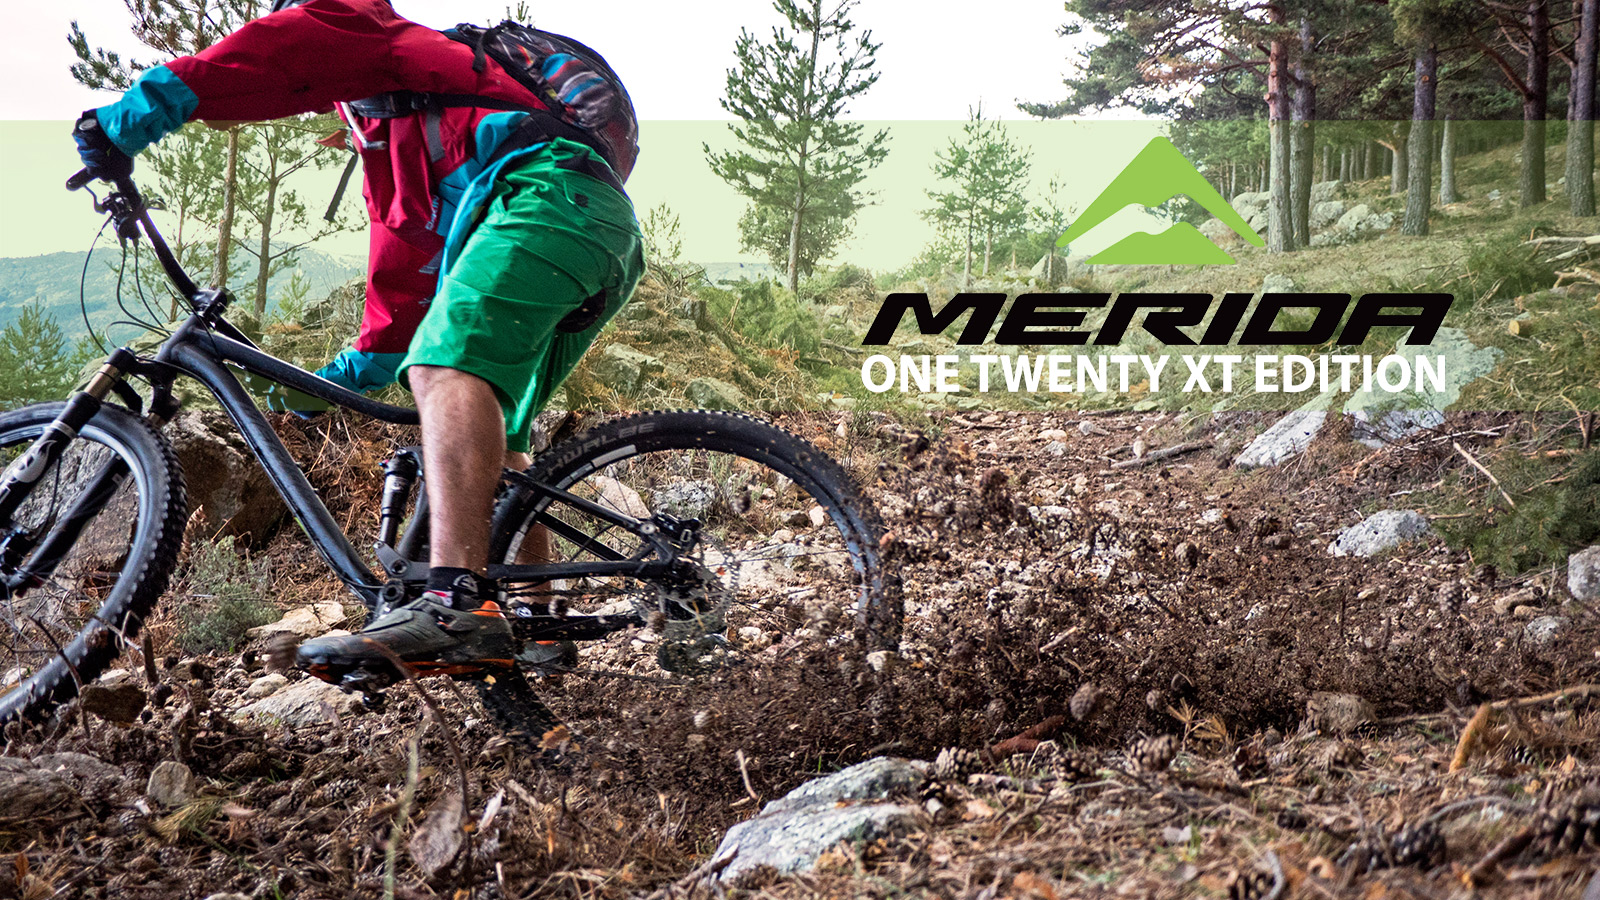 A day with the new Merida One Twenty 2015